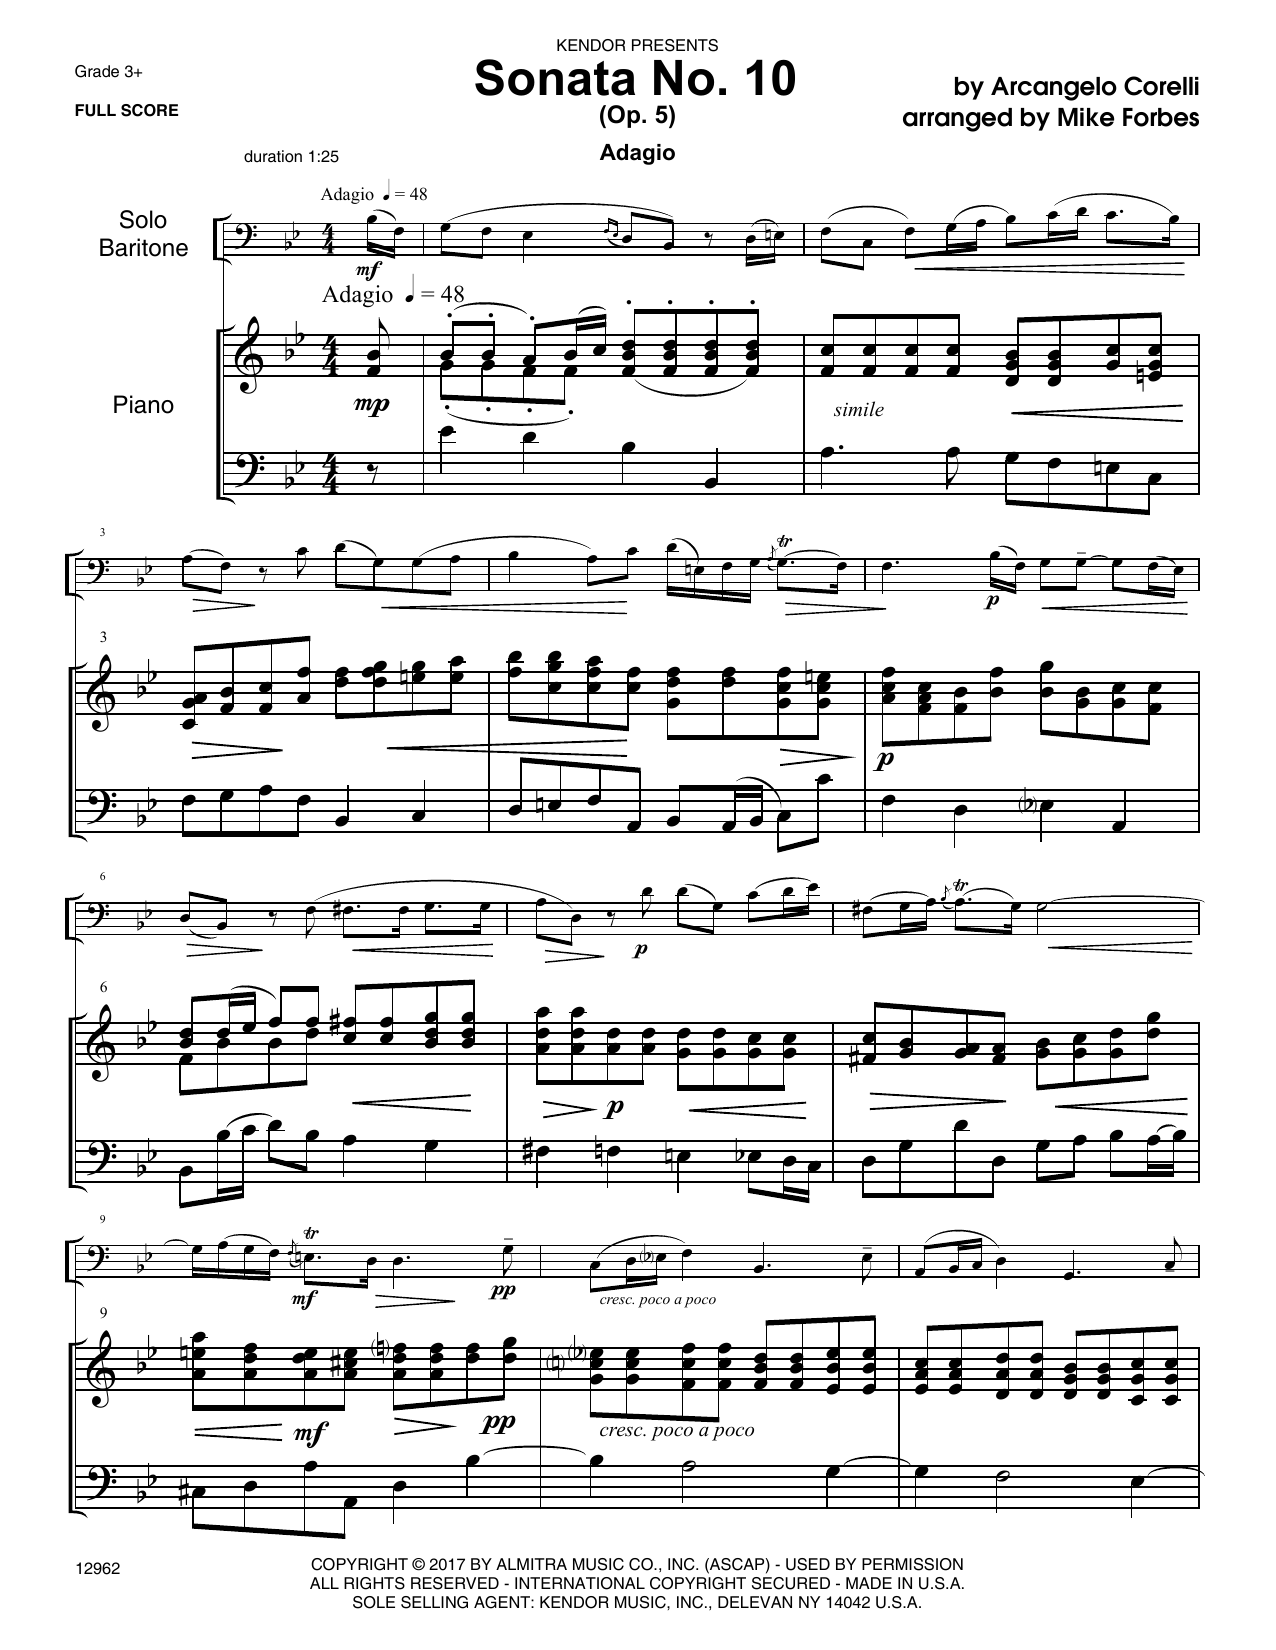 Mike Forbes Sonata No. 10 (Op. 5) - Piano Accompaniment sheet music notes and chords. Download Printable PDF.